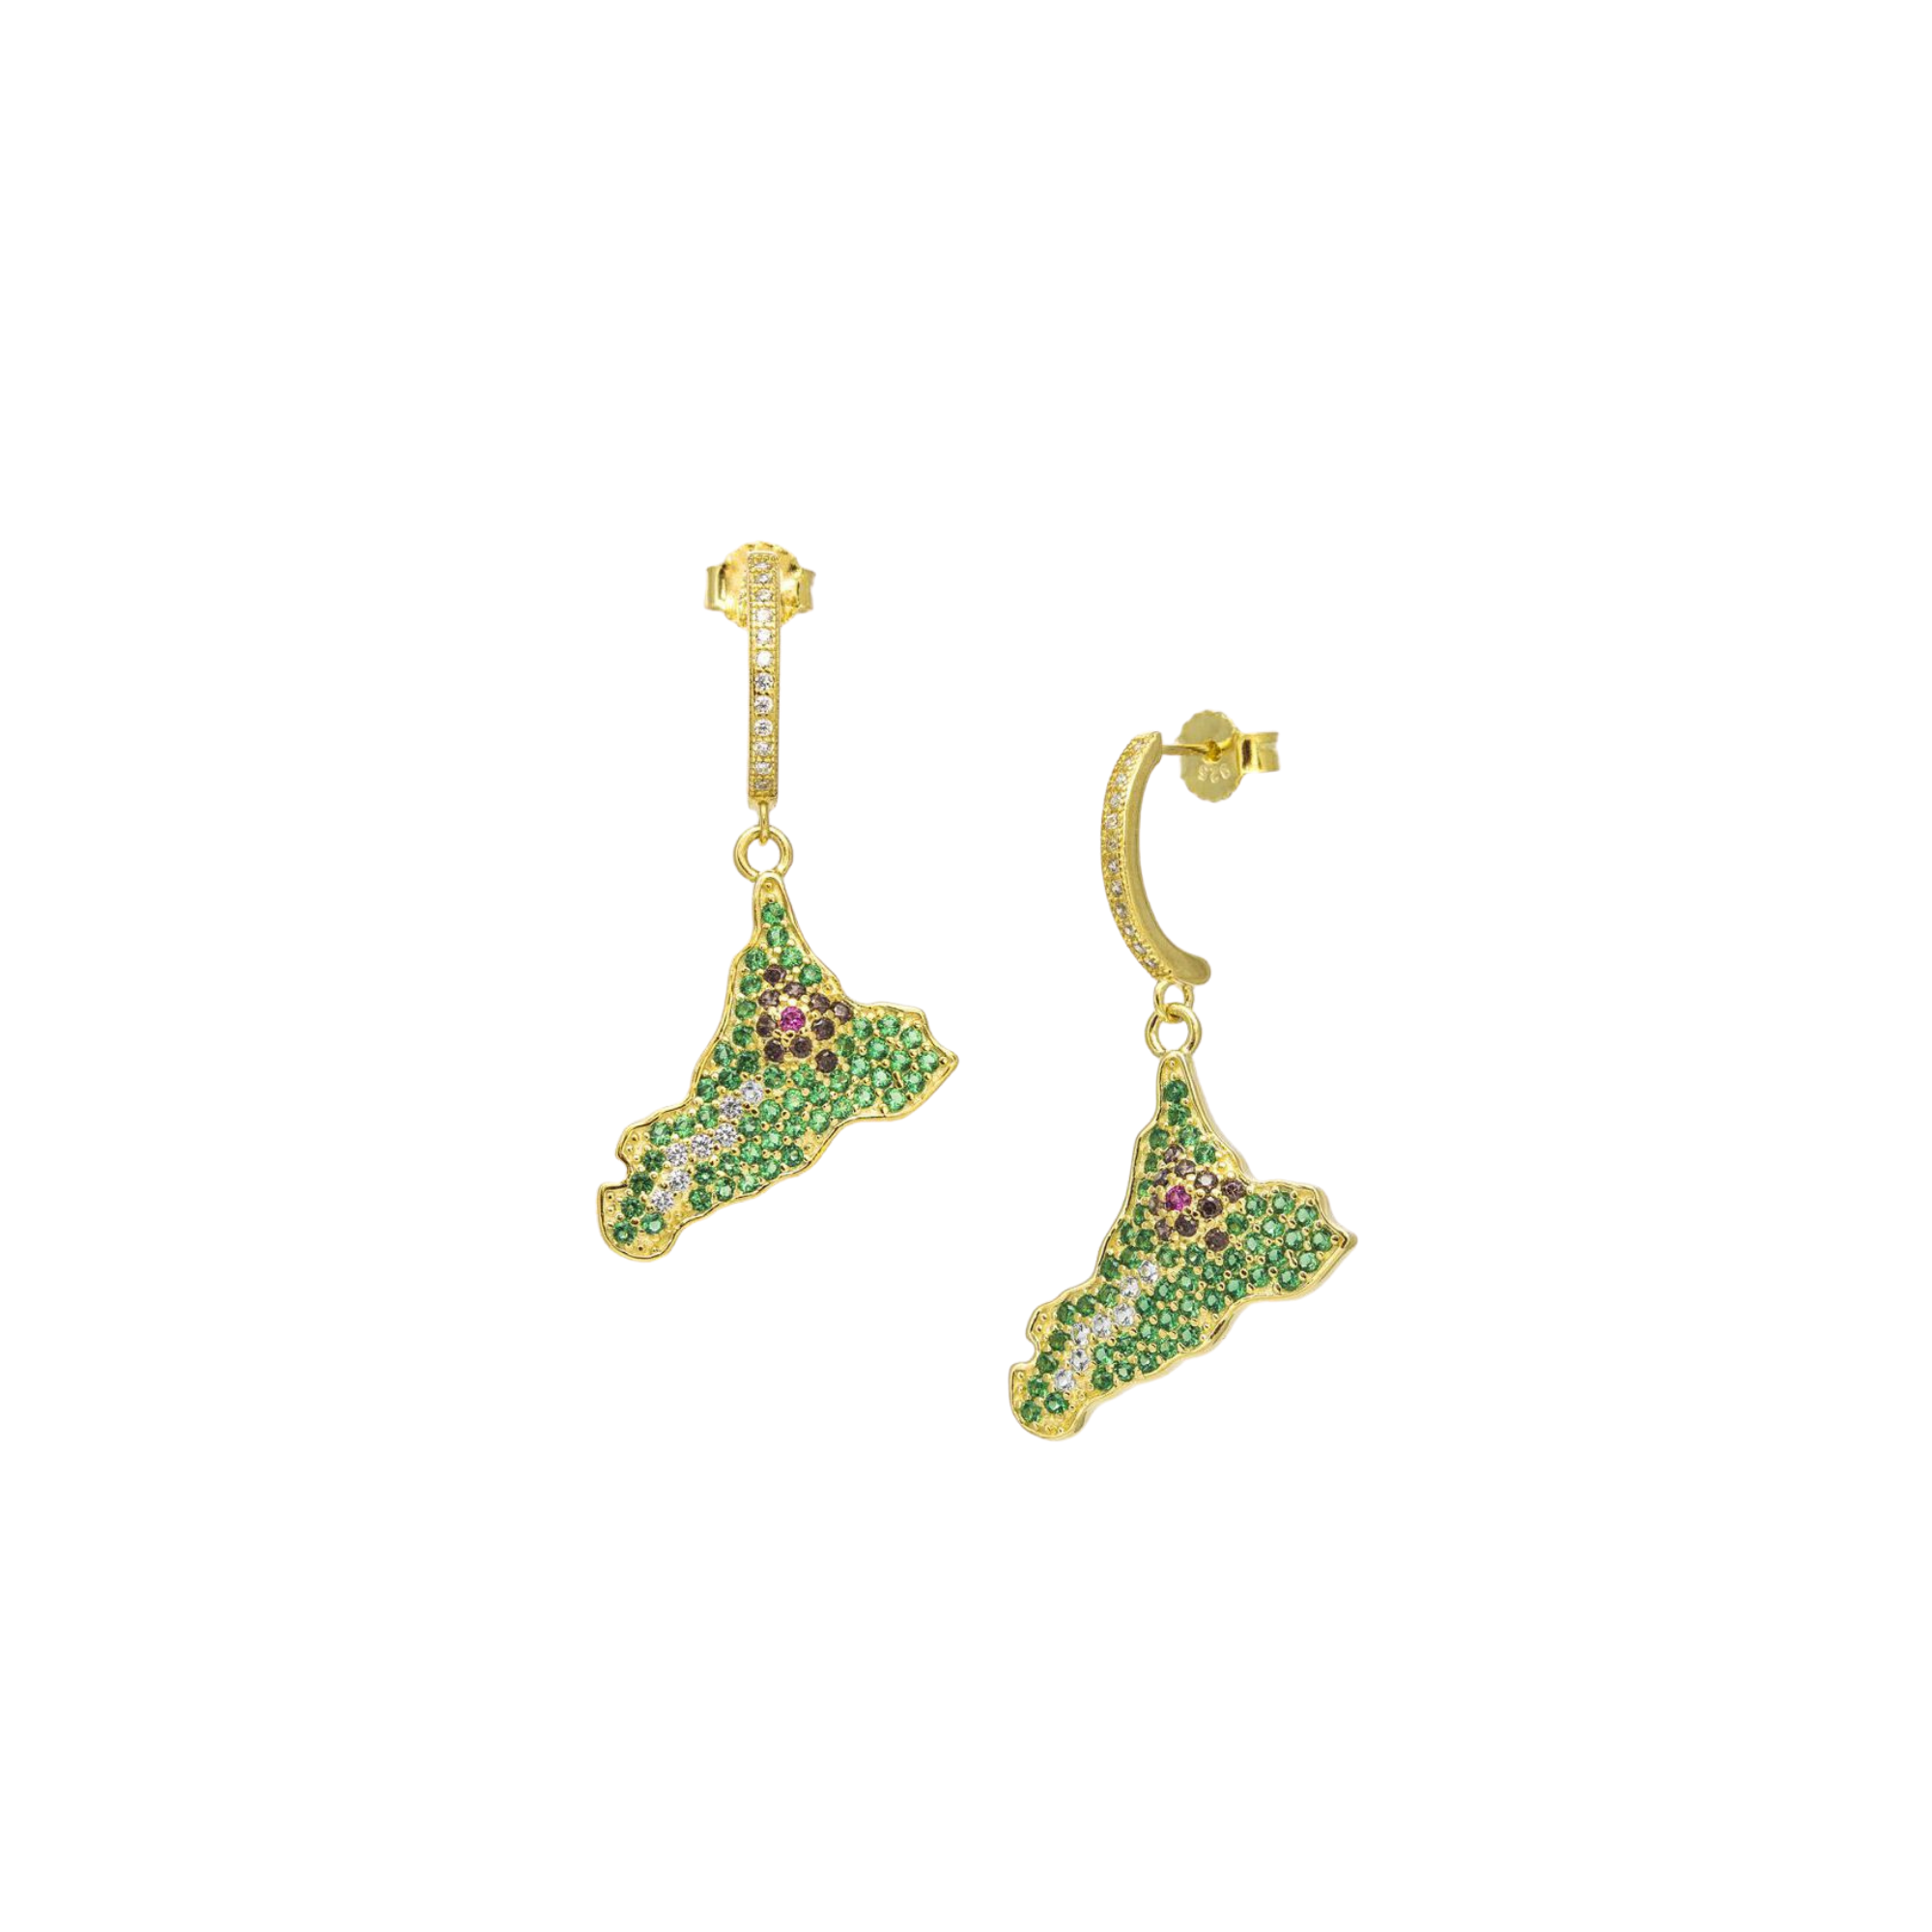 M'ami Sicily Earrings - MSE501/G